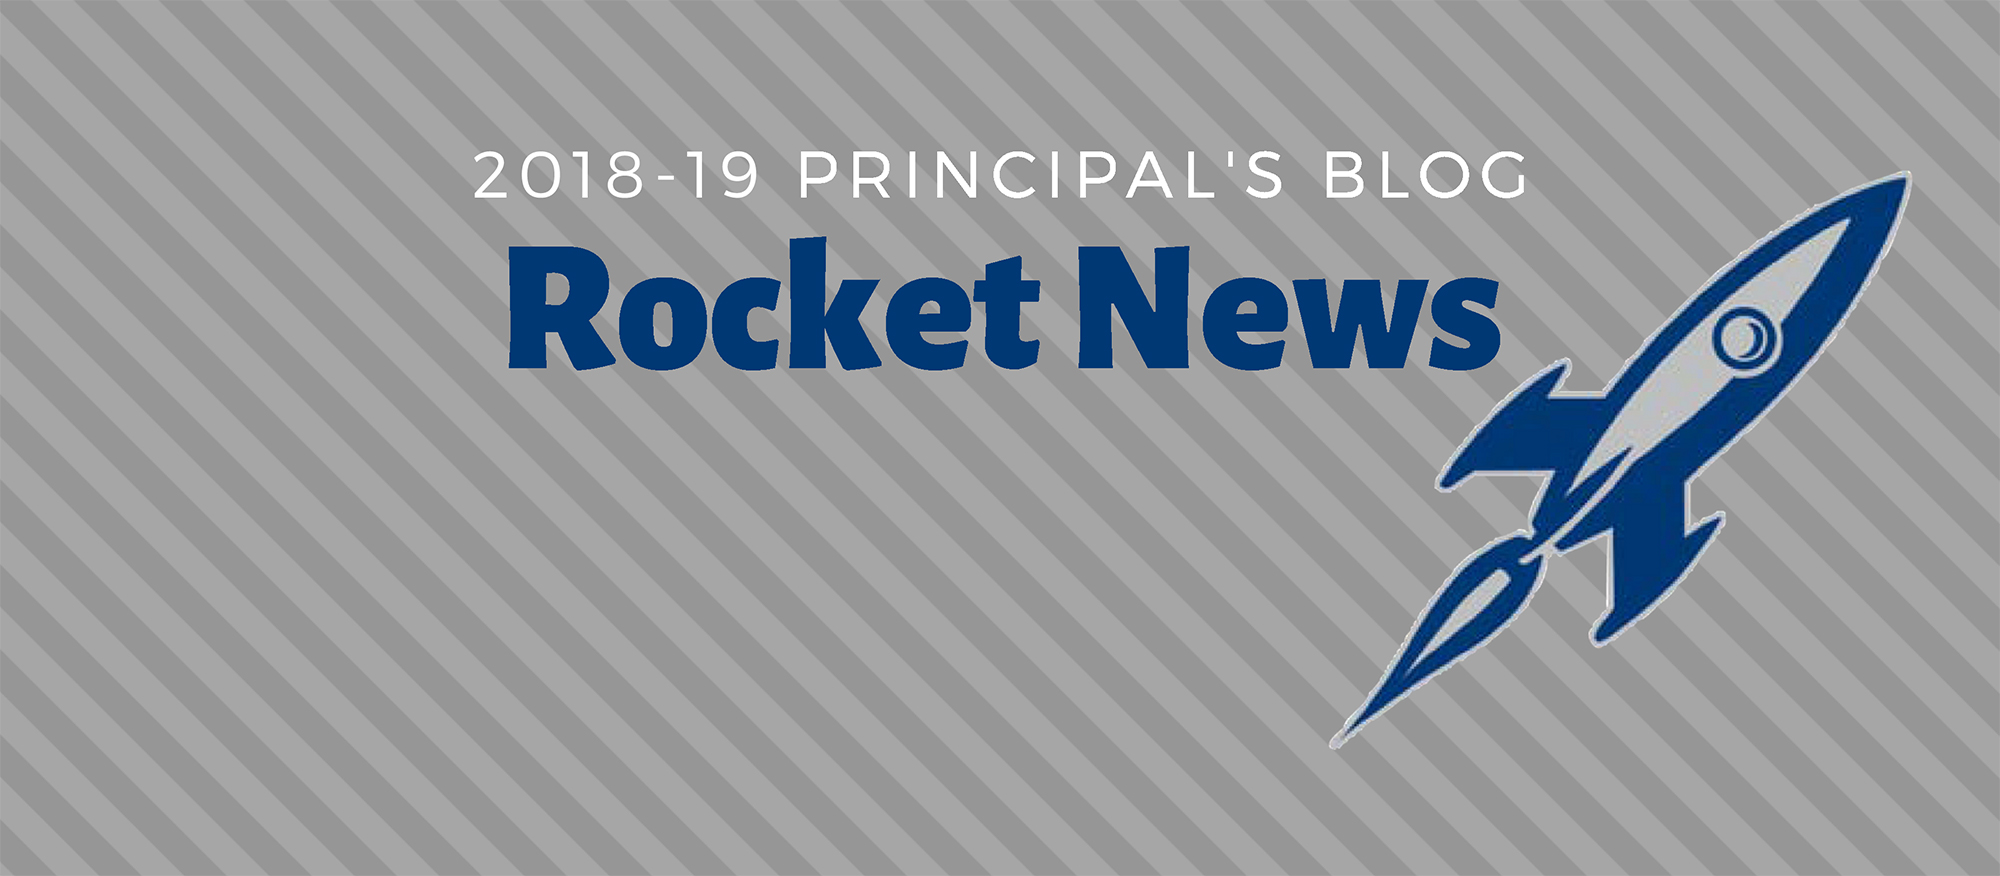 2018-19 Principal's Blog: Rocket News